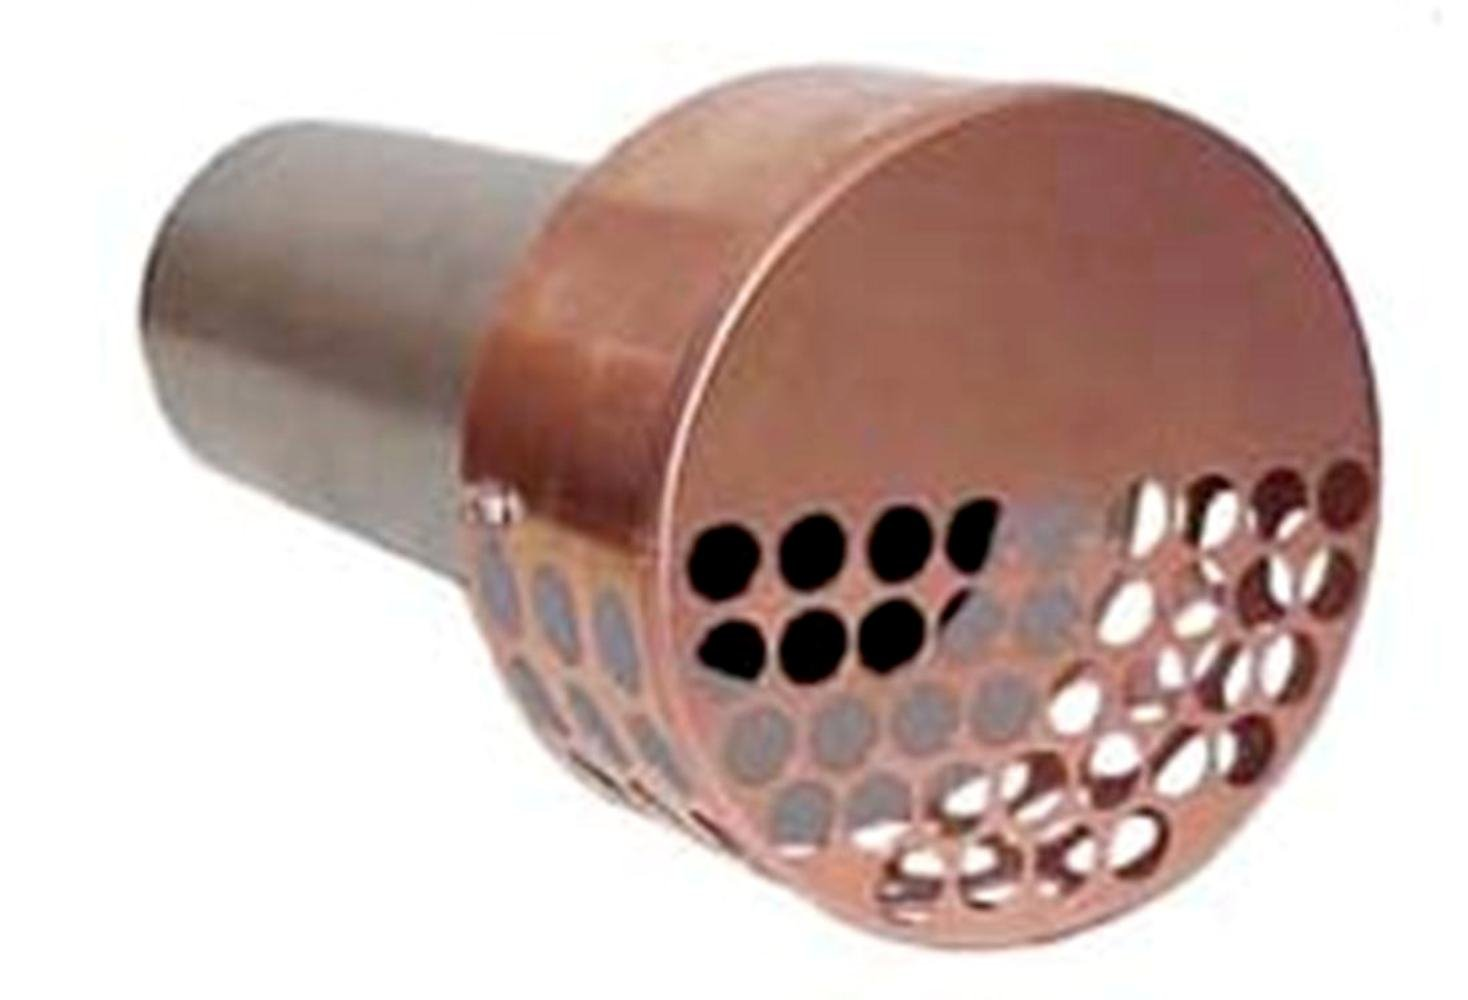 The Forever Cap CCCDRVT 4-Inch Copper Dryer Vent Cover